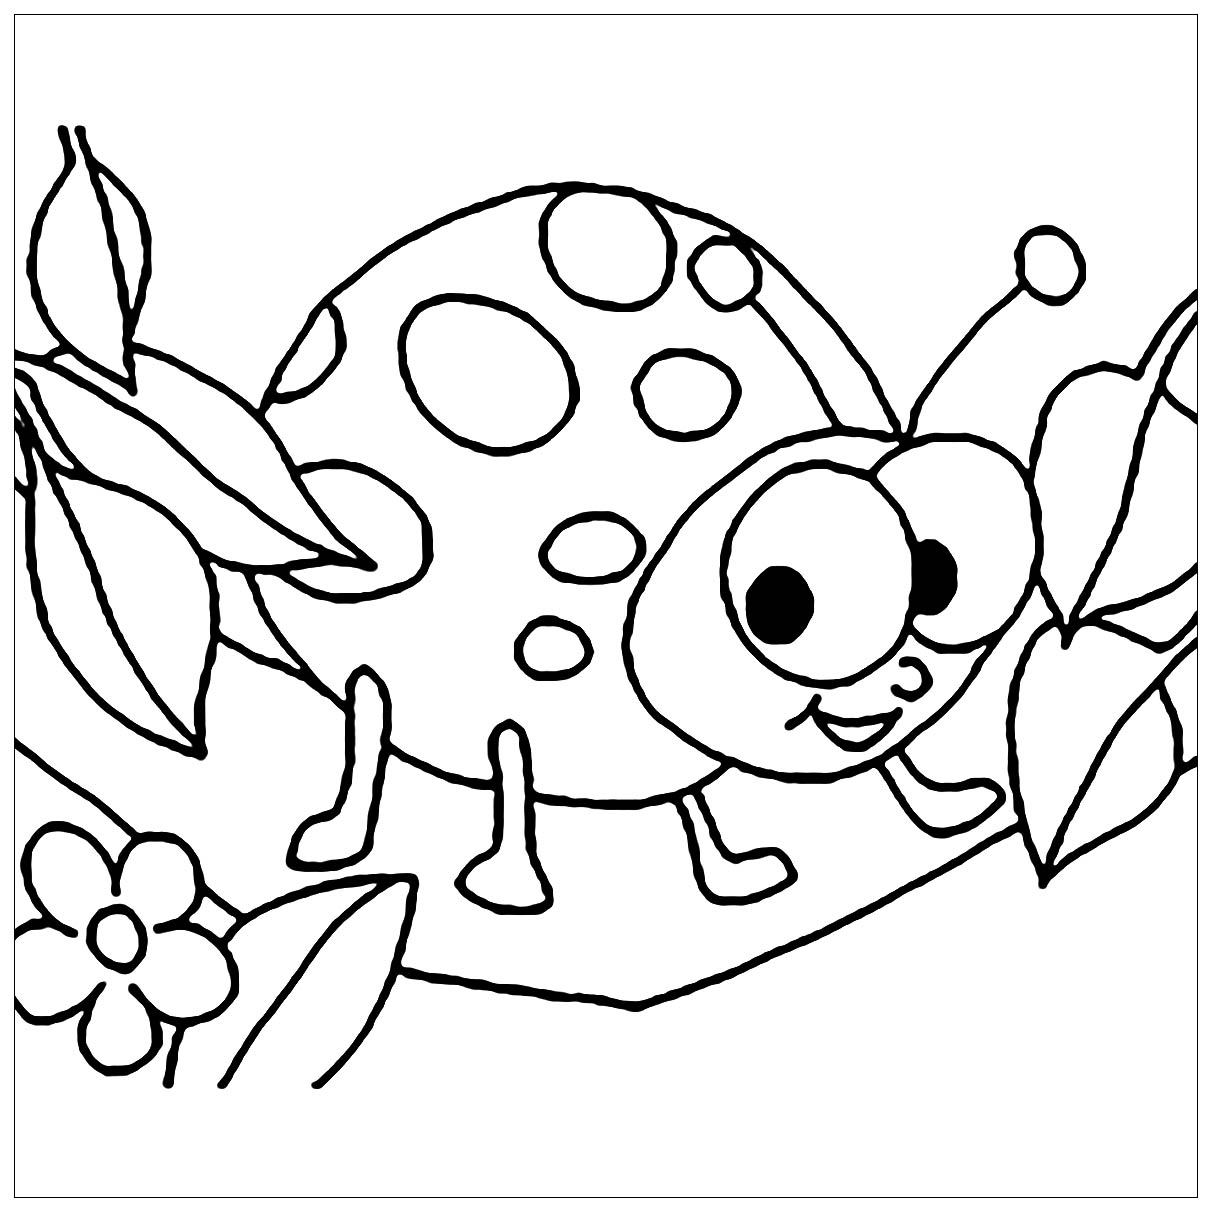 Printable Insects coloring page to print and color